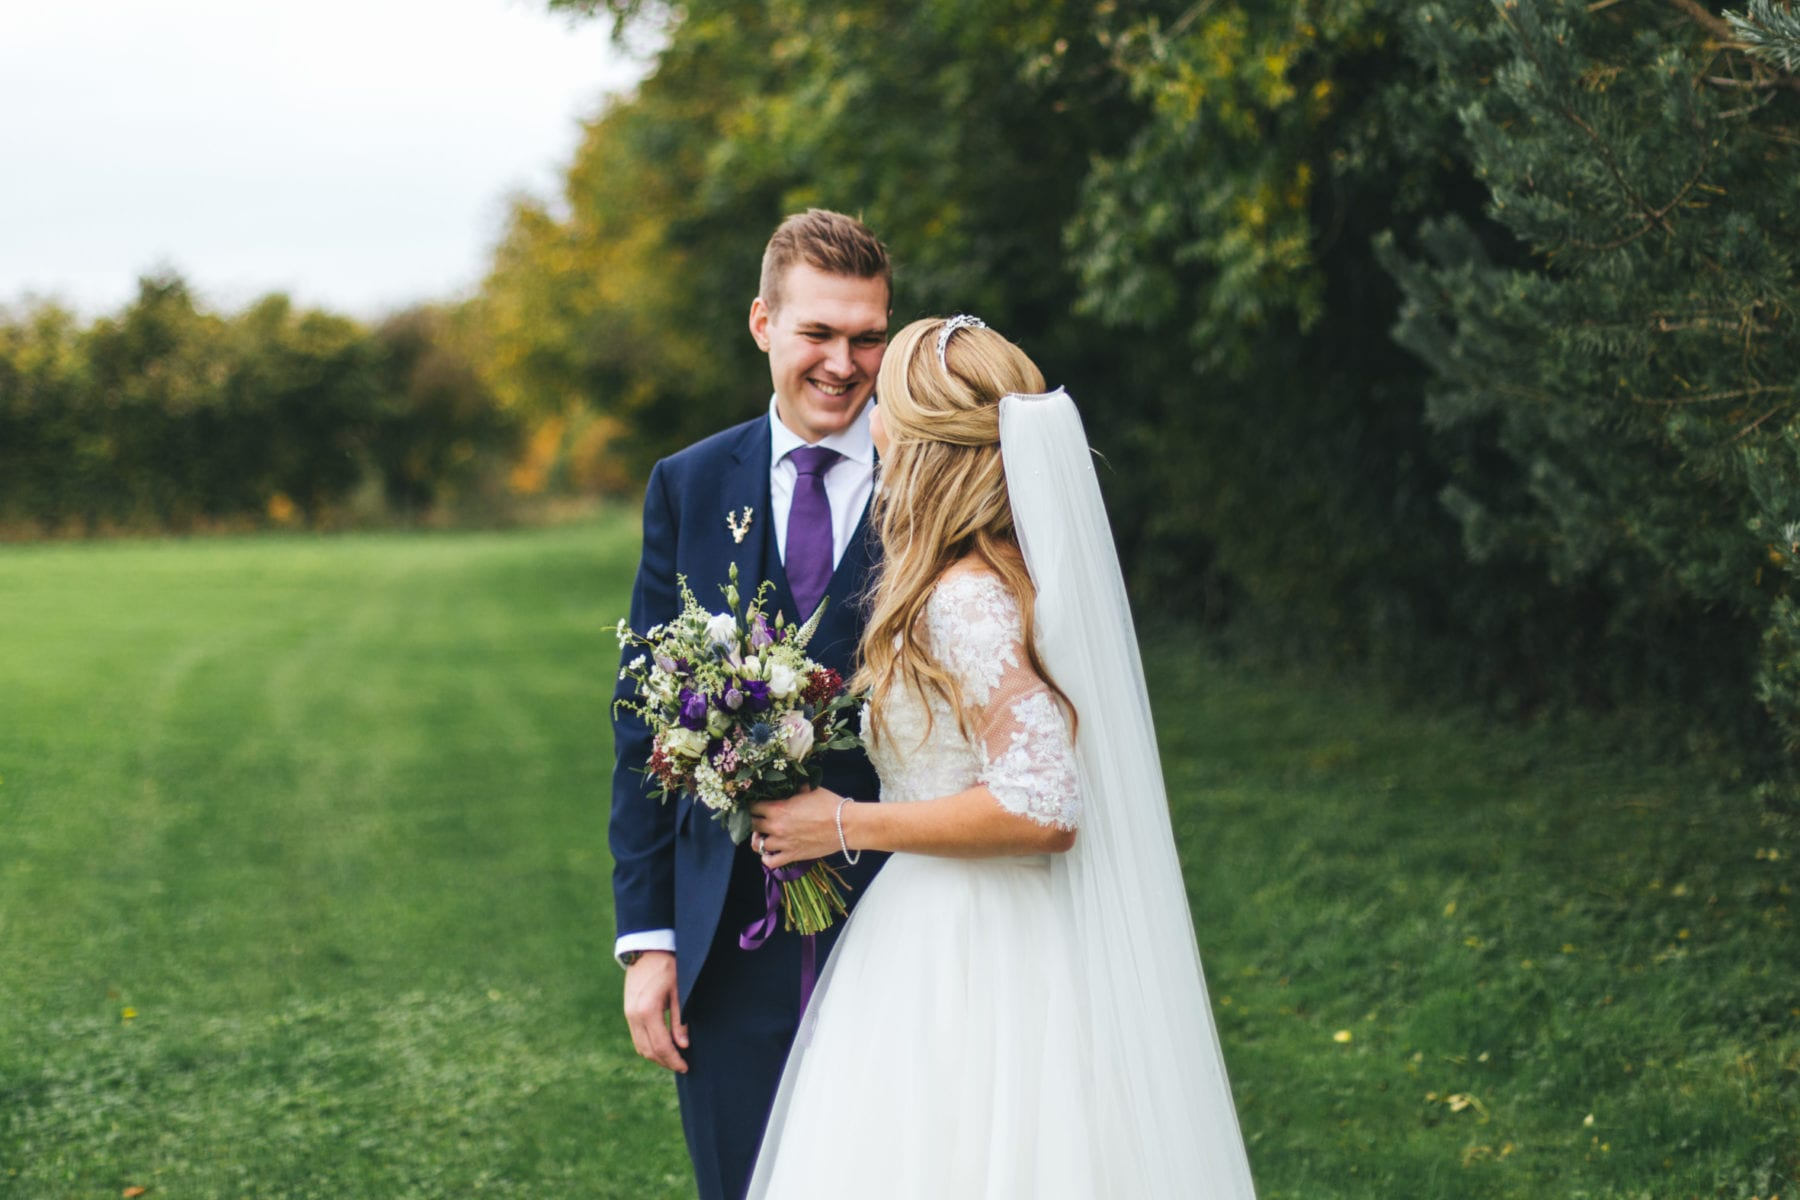 Cripps Barn Wedding Gloucestershire - By Katy & Co. Wedding Photography Bristol